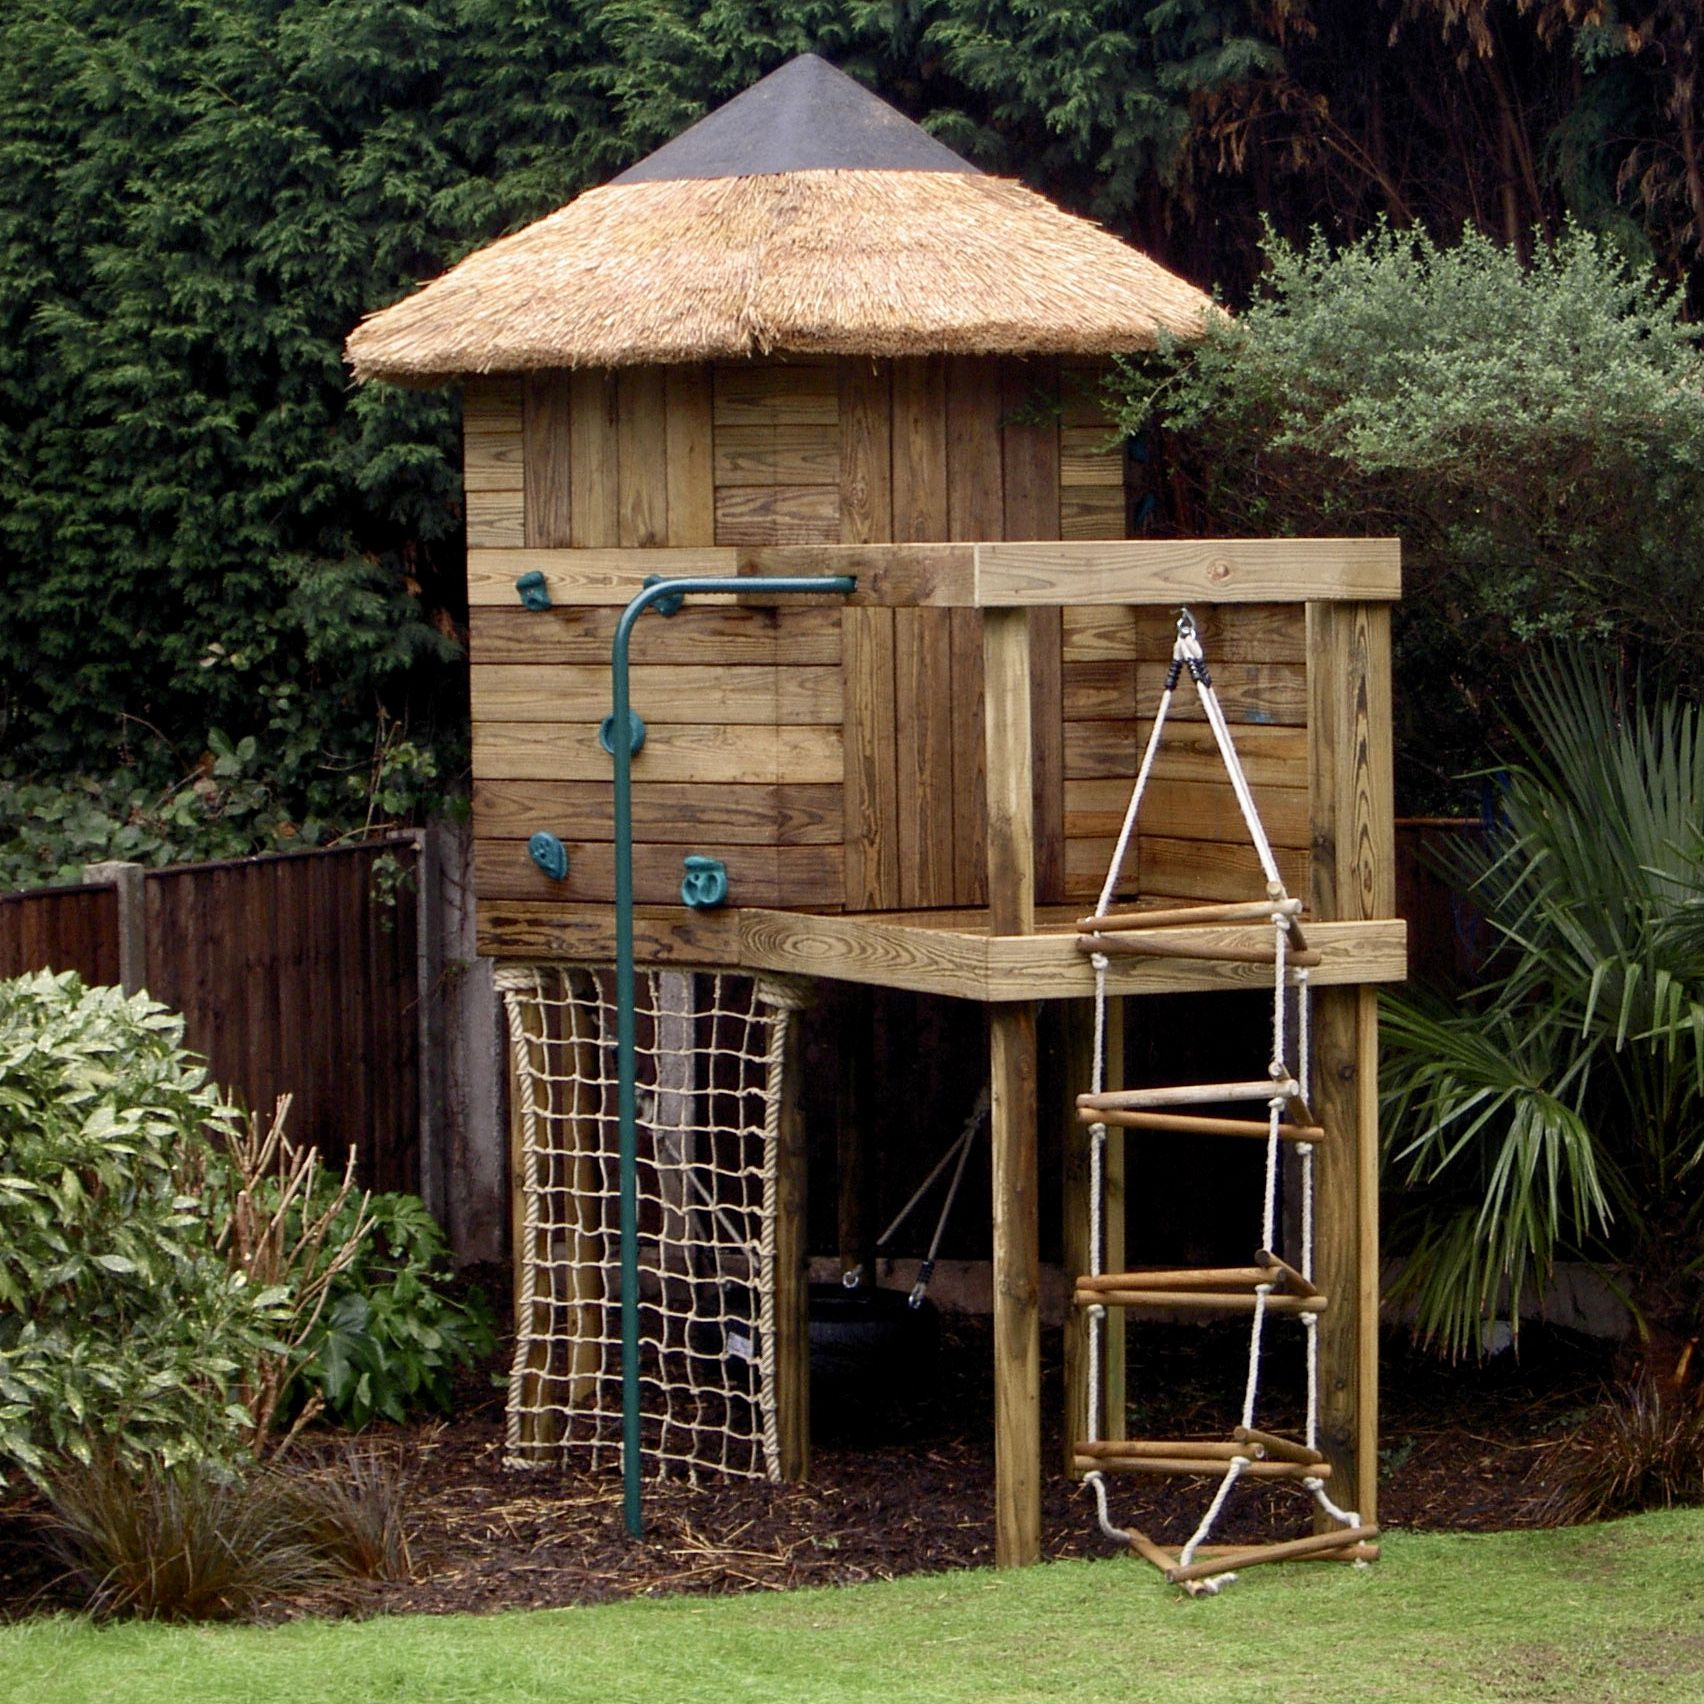 How Much Fun Could You Have With A Small Garden Treehouse Playset Backyard House Backyard Decor Small Backyard Small treehouse for backyard